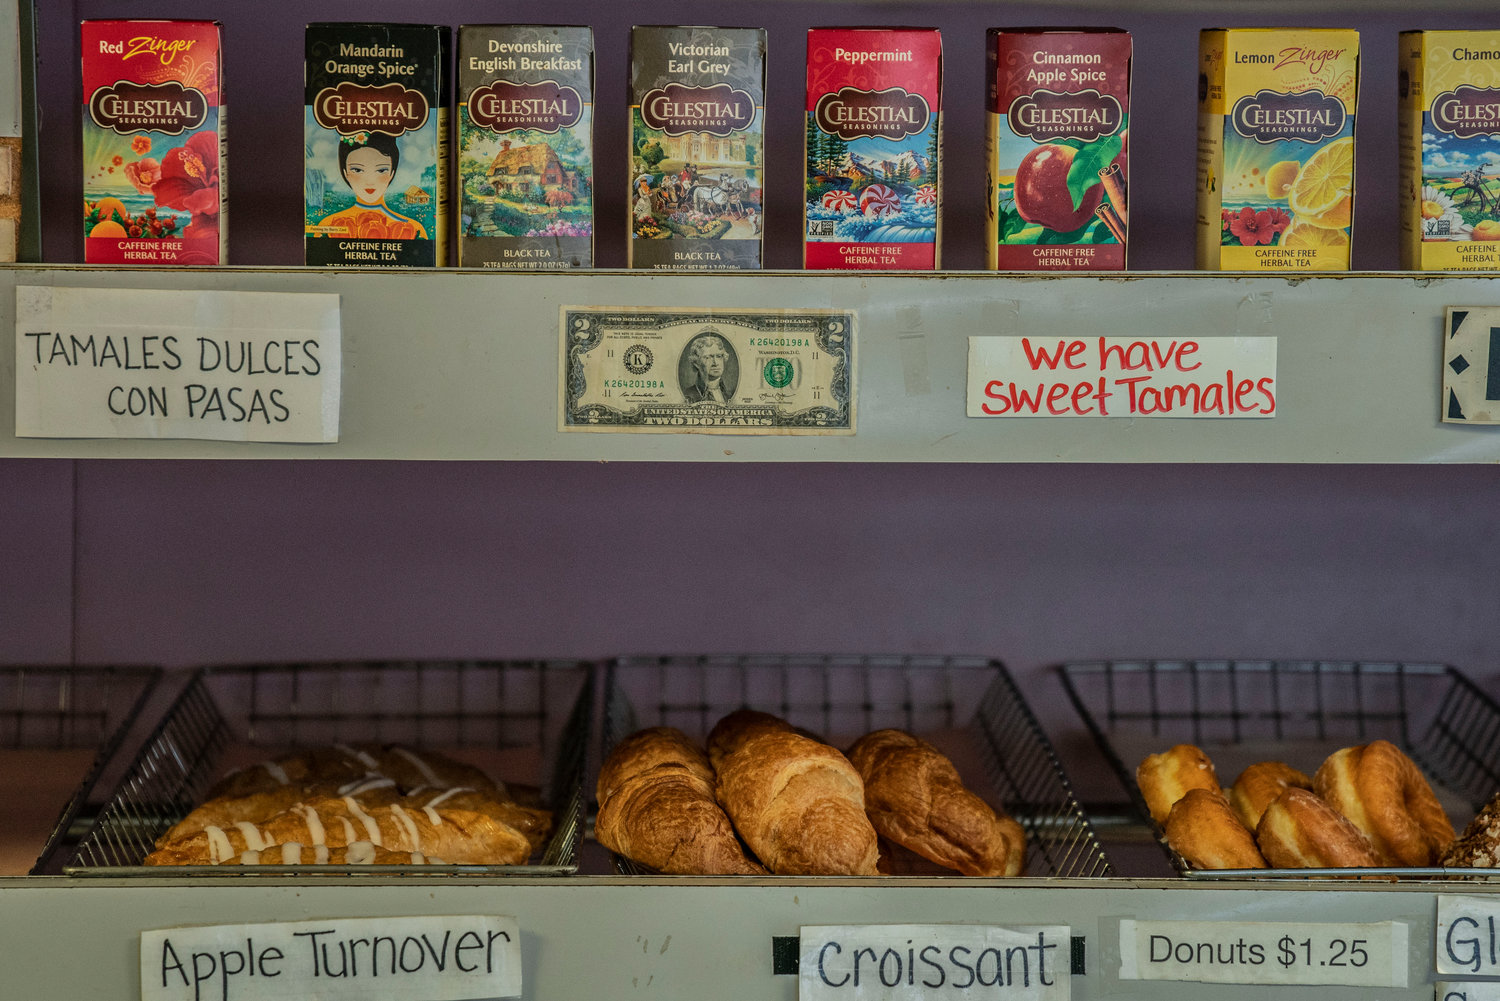 A beloved breakfast and pastry shop, the Kingsbridge Donut Shop has been a neighborhood staple for 20 years. But seven months into the coronavirus pandemic, the shop isn't able to keep up with its rent, says owner Fernando Rodríguez. He expects to close the diner later this month.